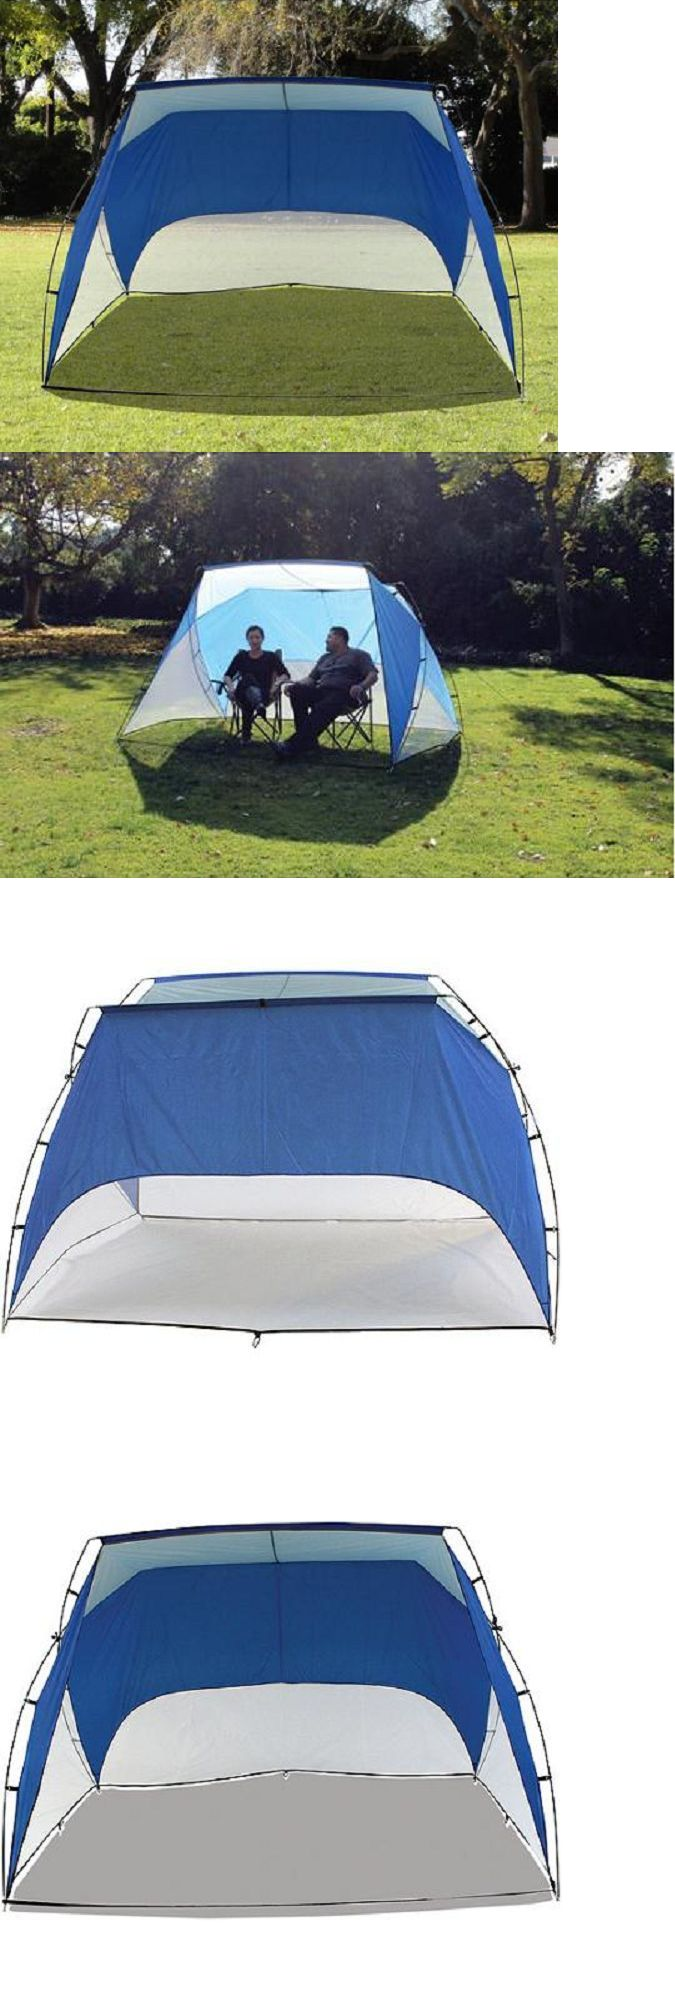 Canopies and Shelters 179011: Beach Tent Pop Up Shelter Sun Shade Canopy Sports Umbrella Instant Shack New -> BUY IT NOW ONLY: $57.49 on eBay!